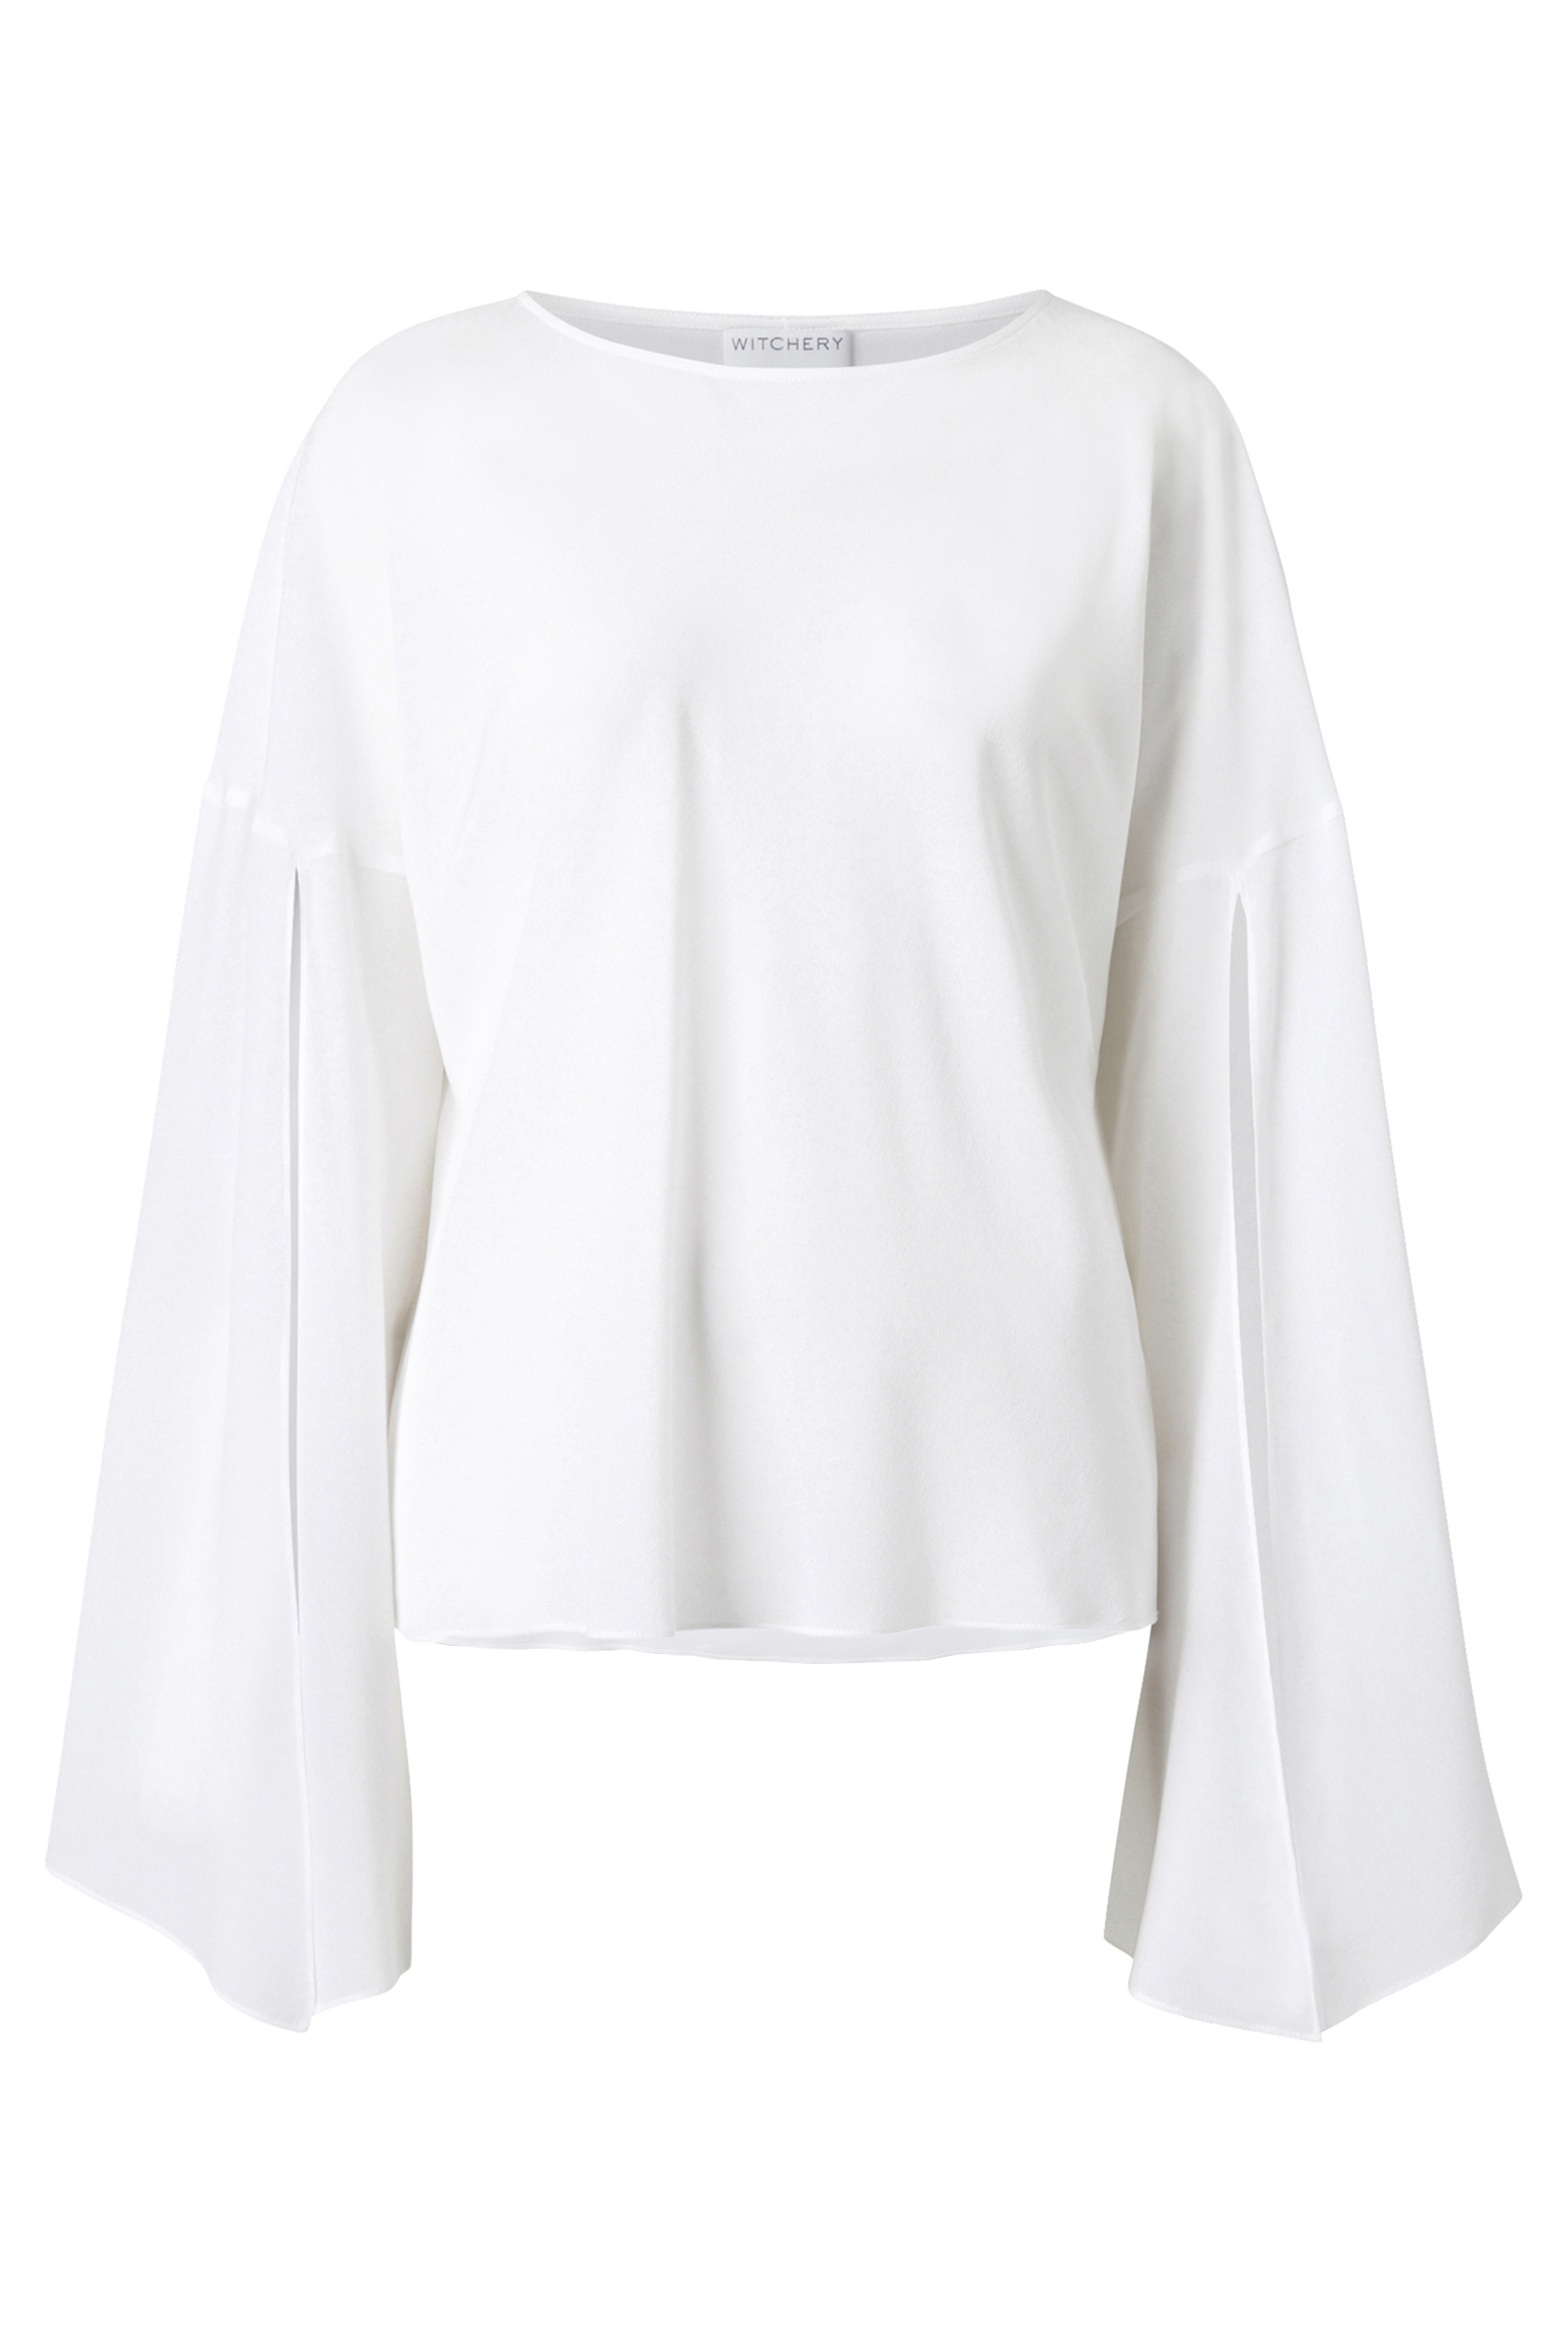 60206086_Witchery OCRF Silk Bell Blouse, RRP$229.90